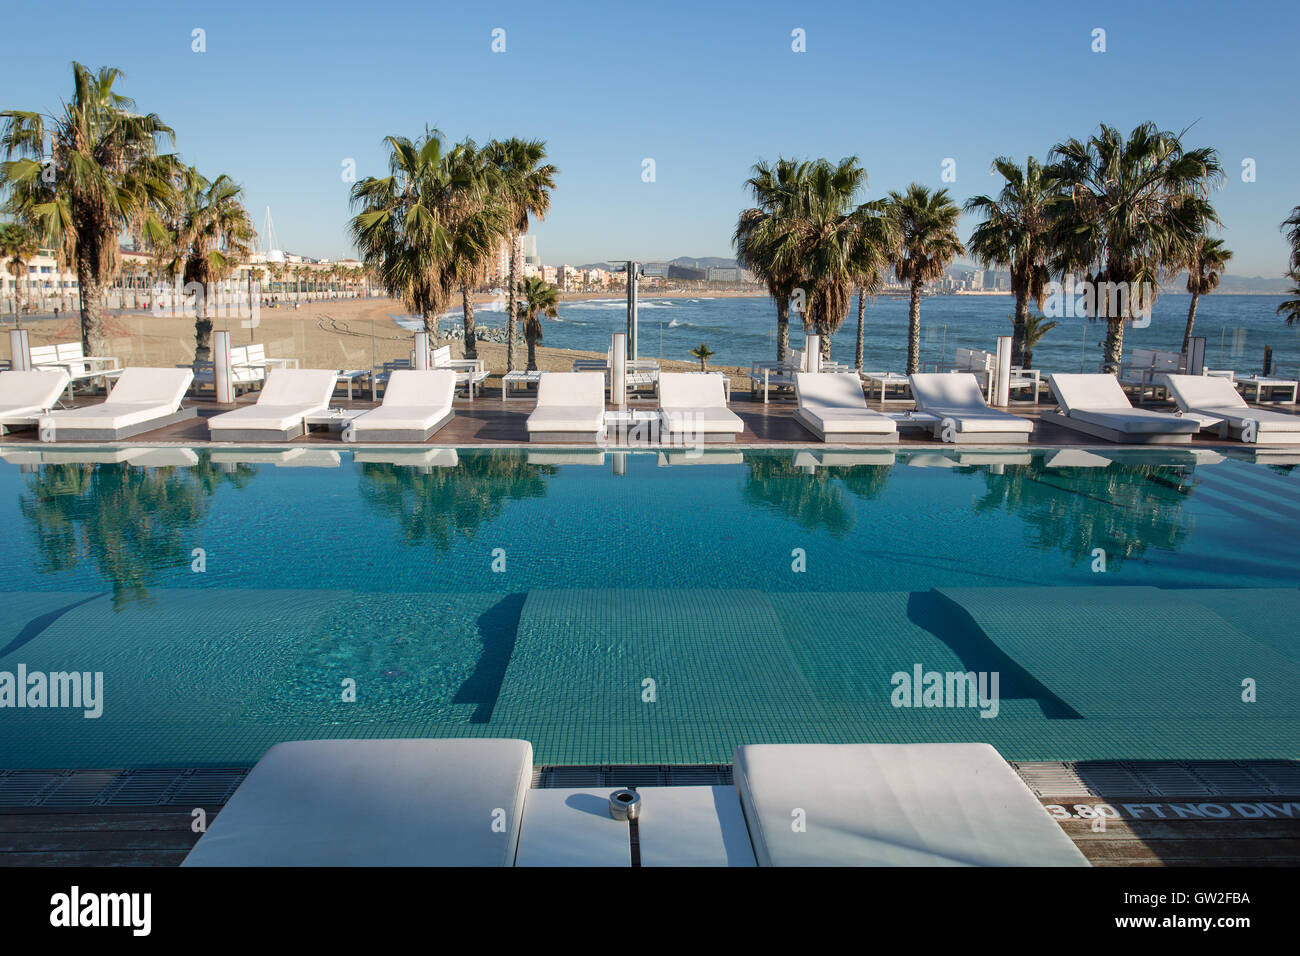 The Pool At The W Hotel Barcelona Spain Stock Photo 118684590 Alamy